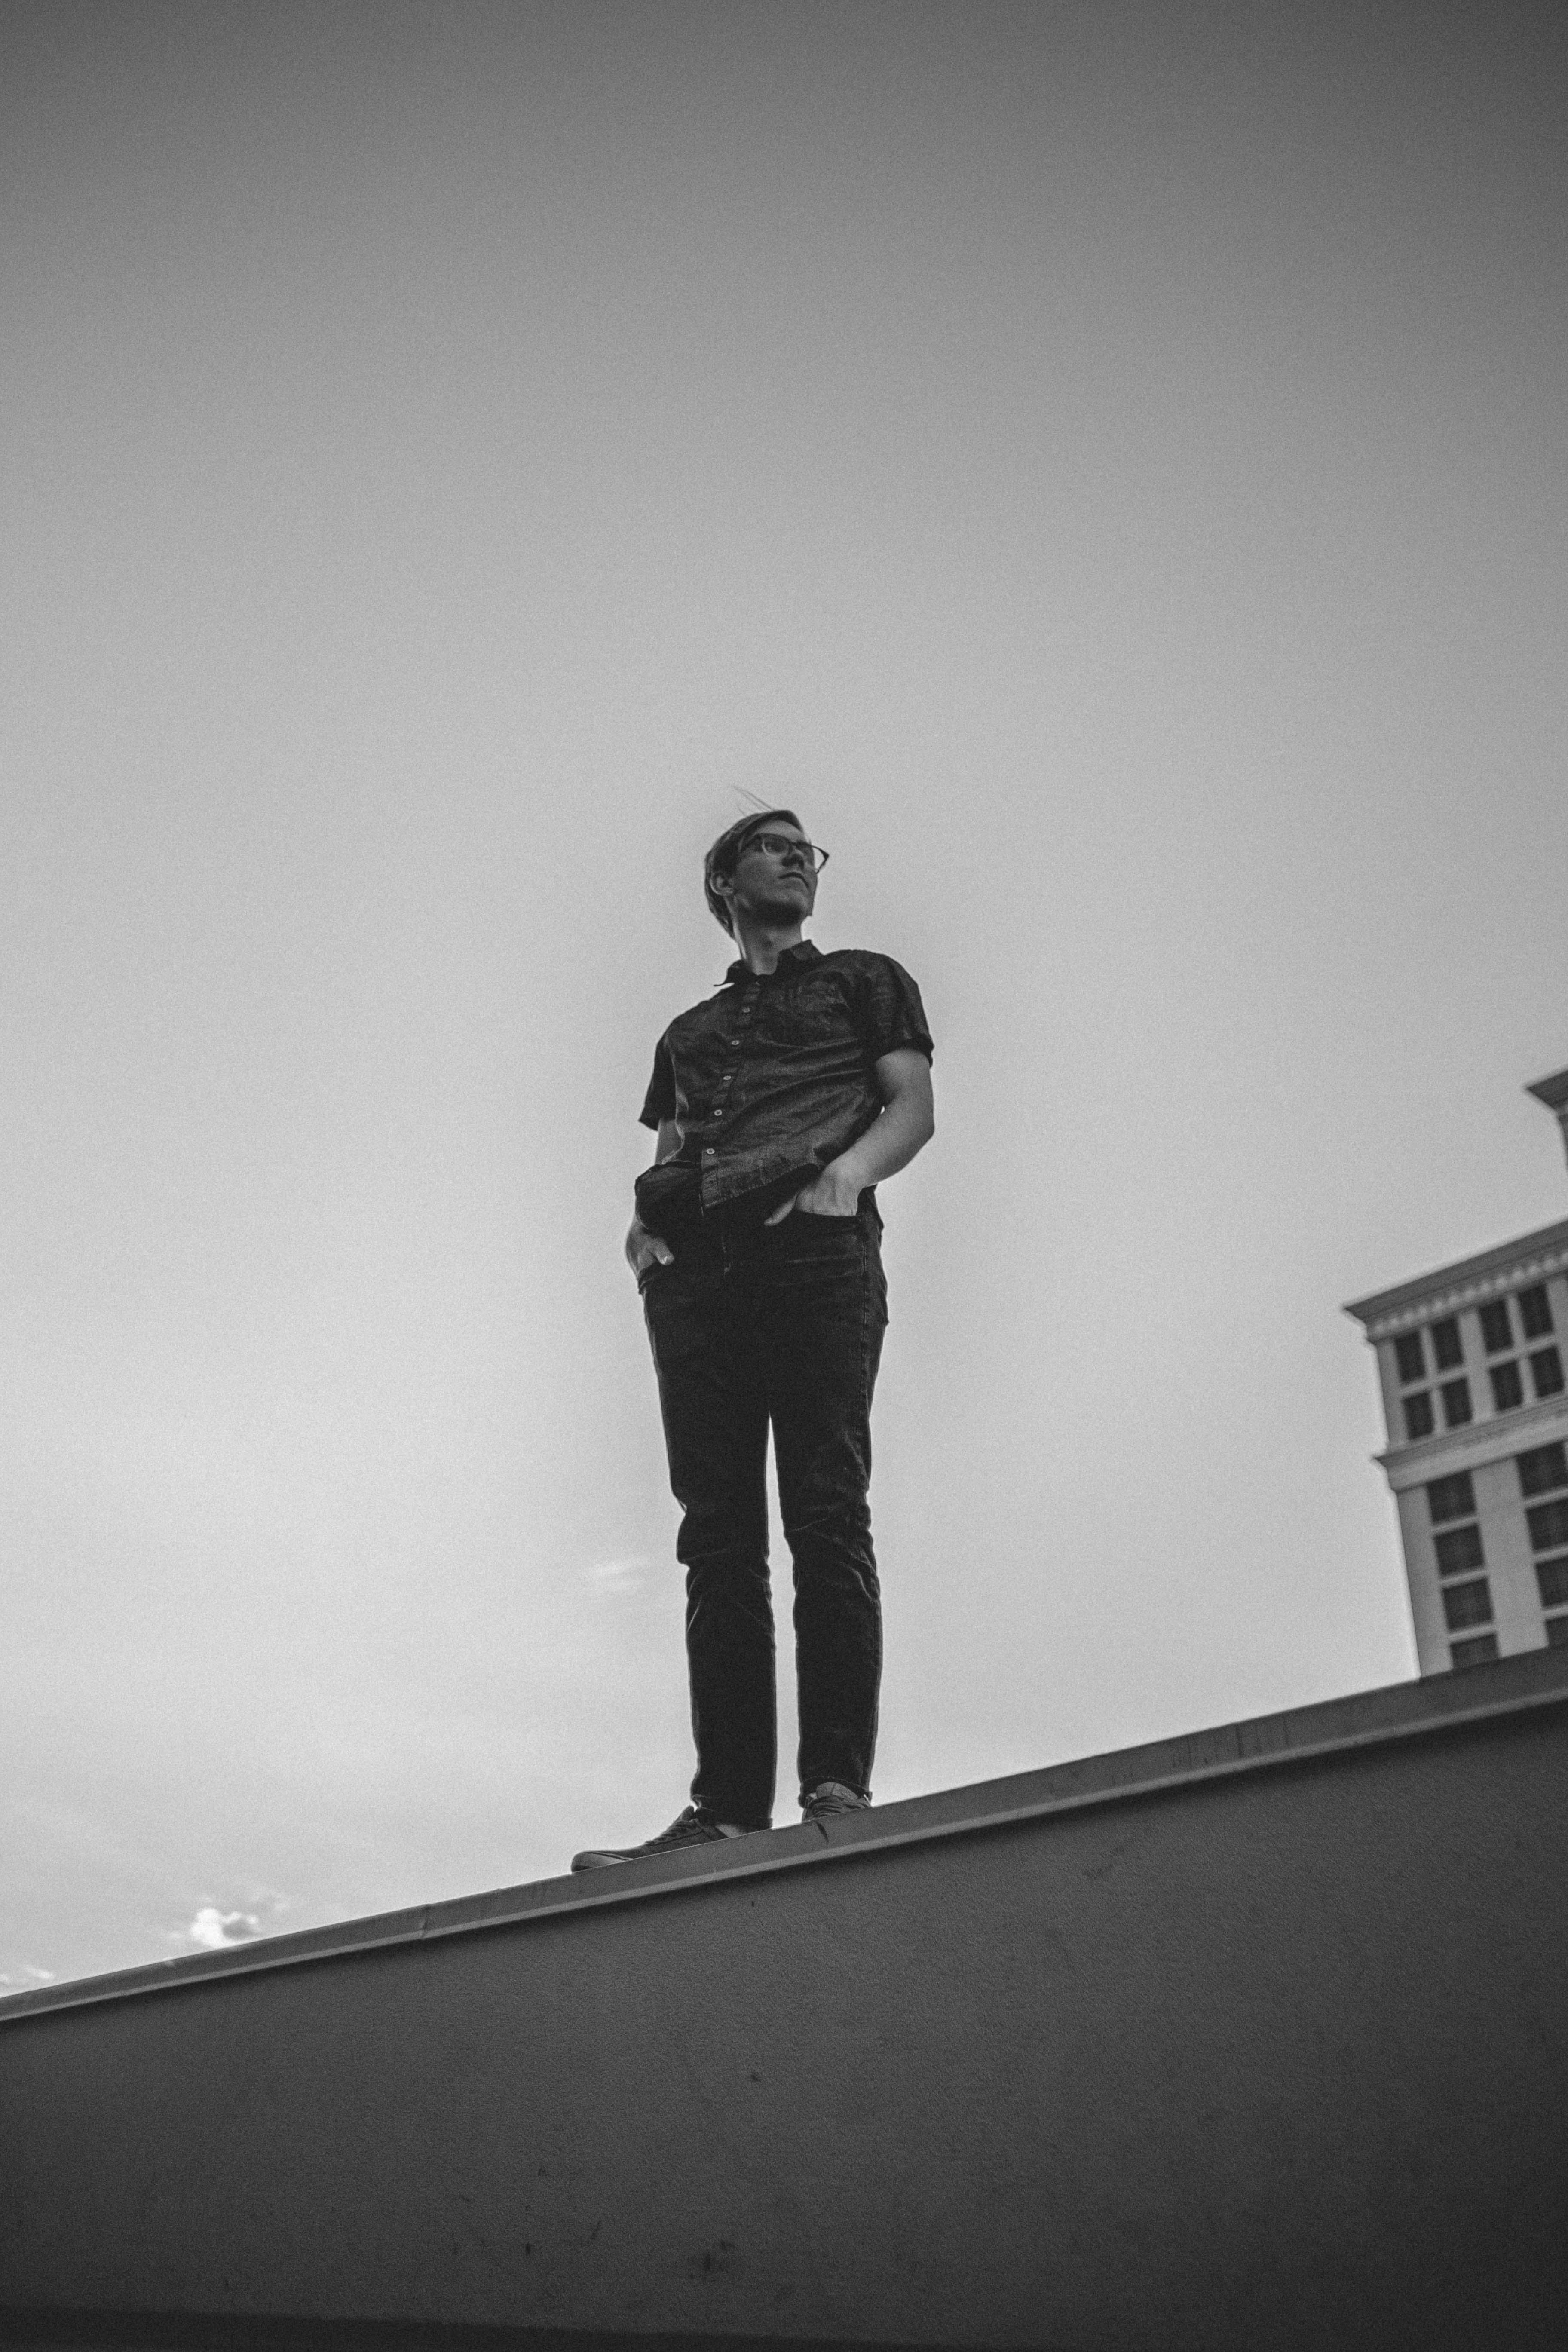 man standing on building edge